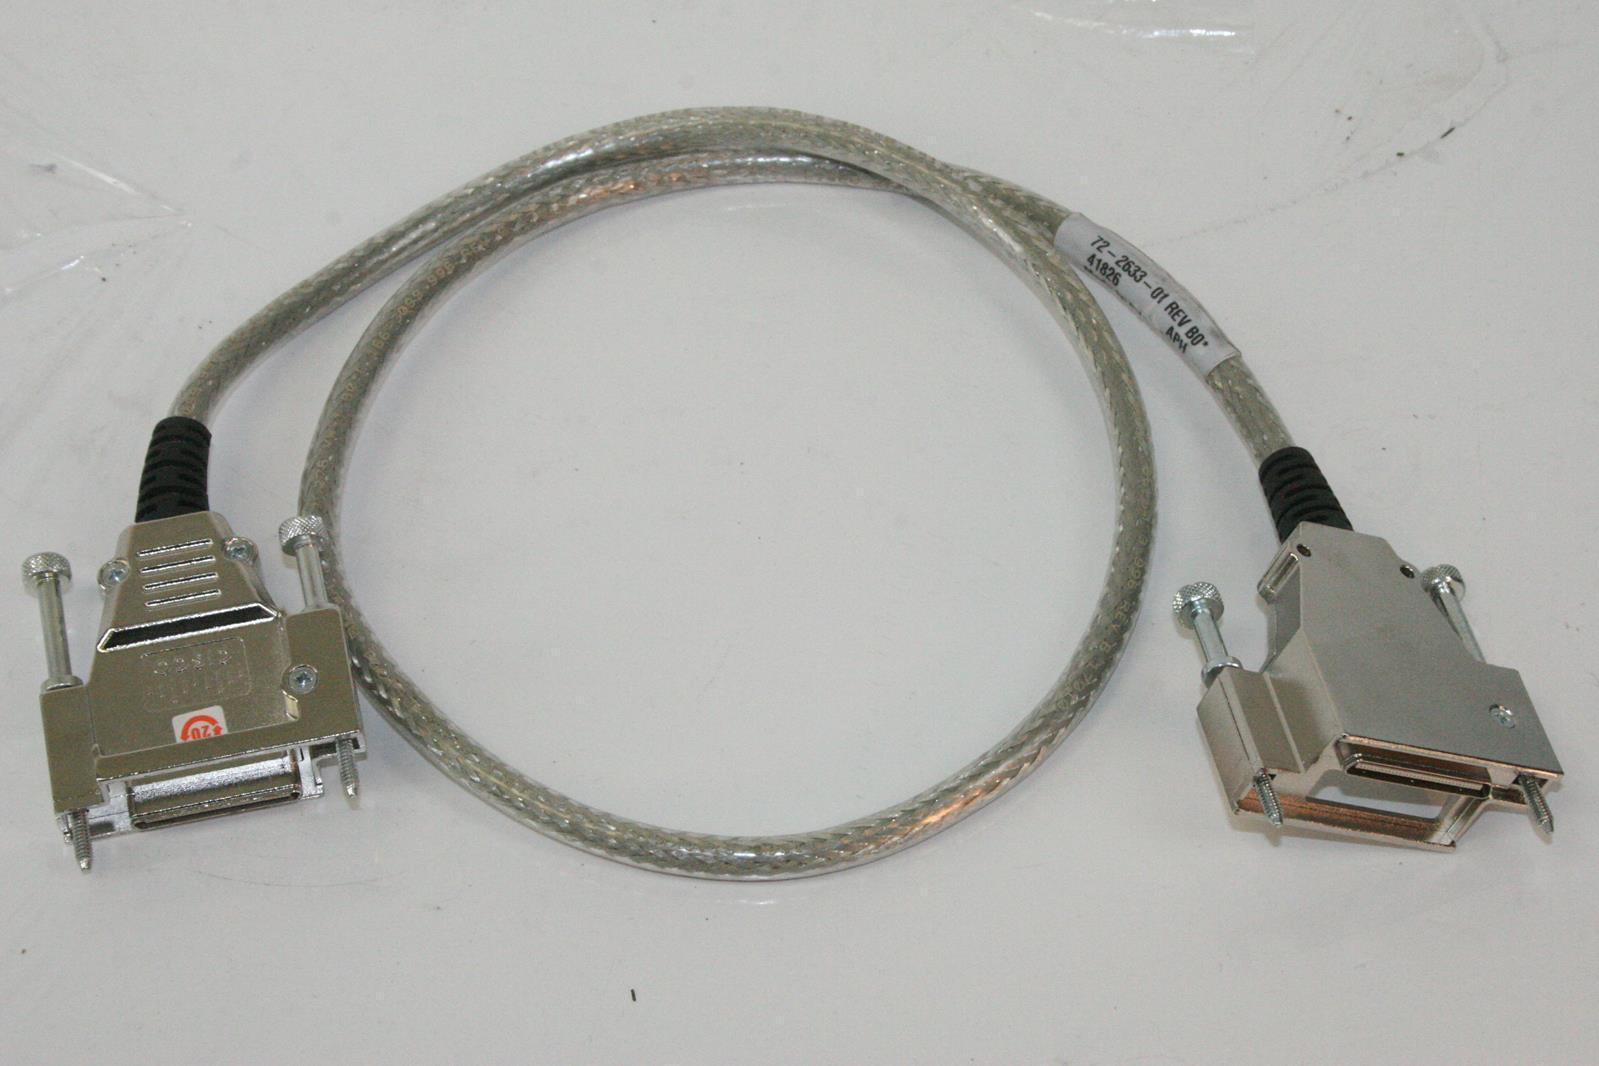 Cisco 72-2633-01 CAB-STACK-1M StackWise 1M Stacking Cable